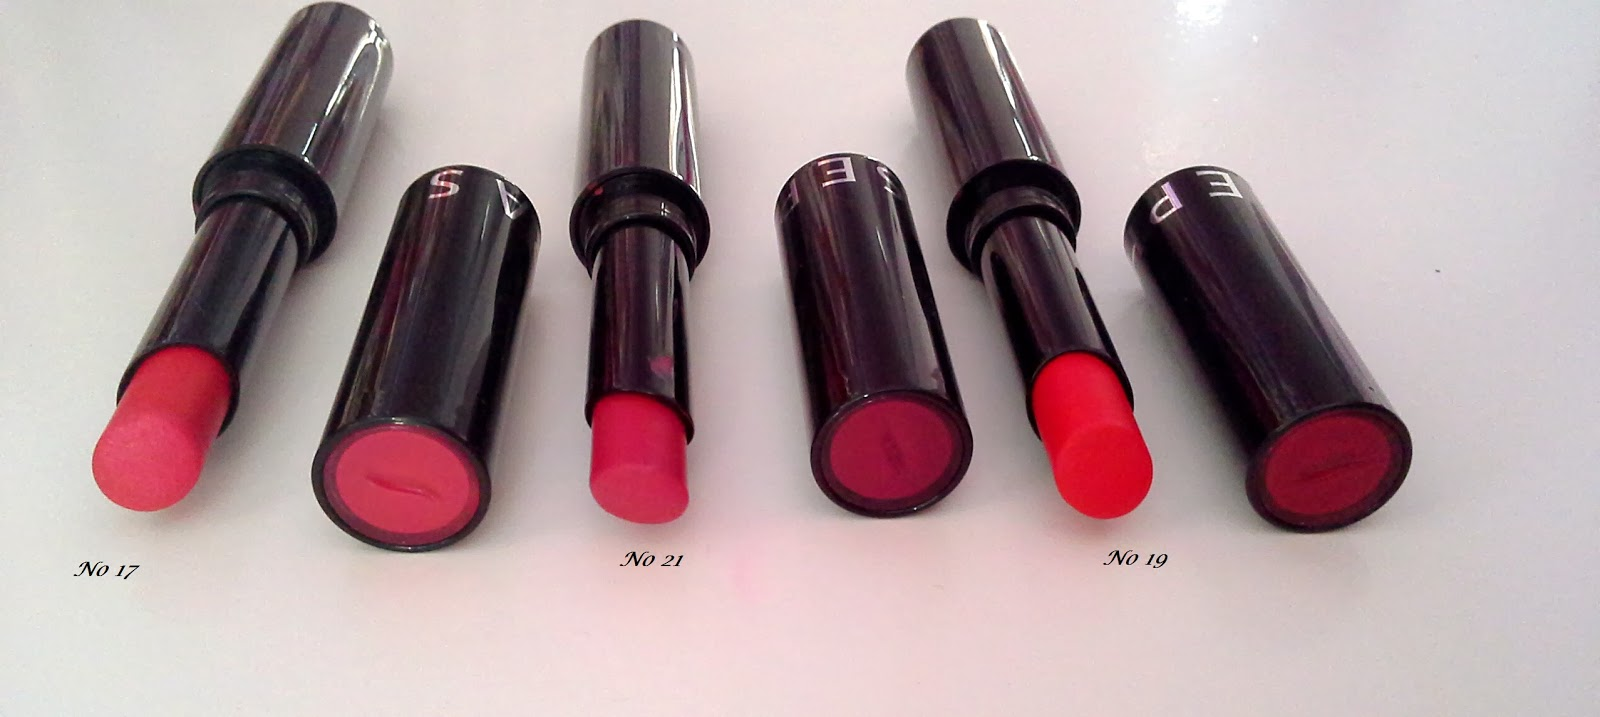 Review: Sephora Long Lasting Lipstick